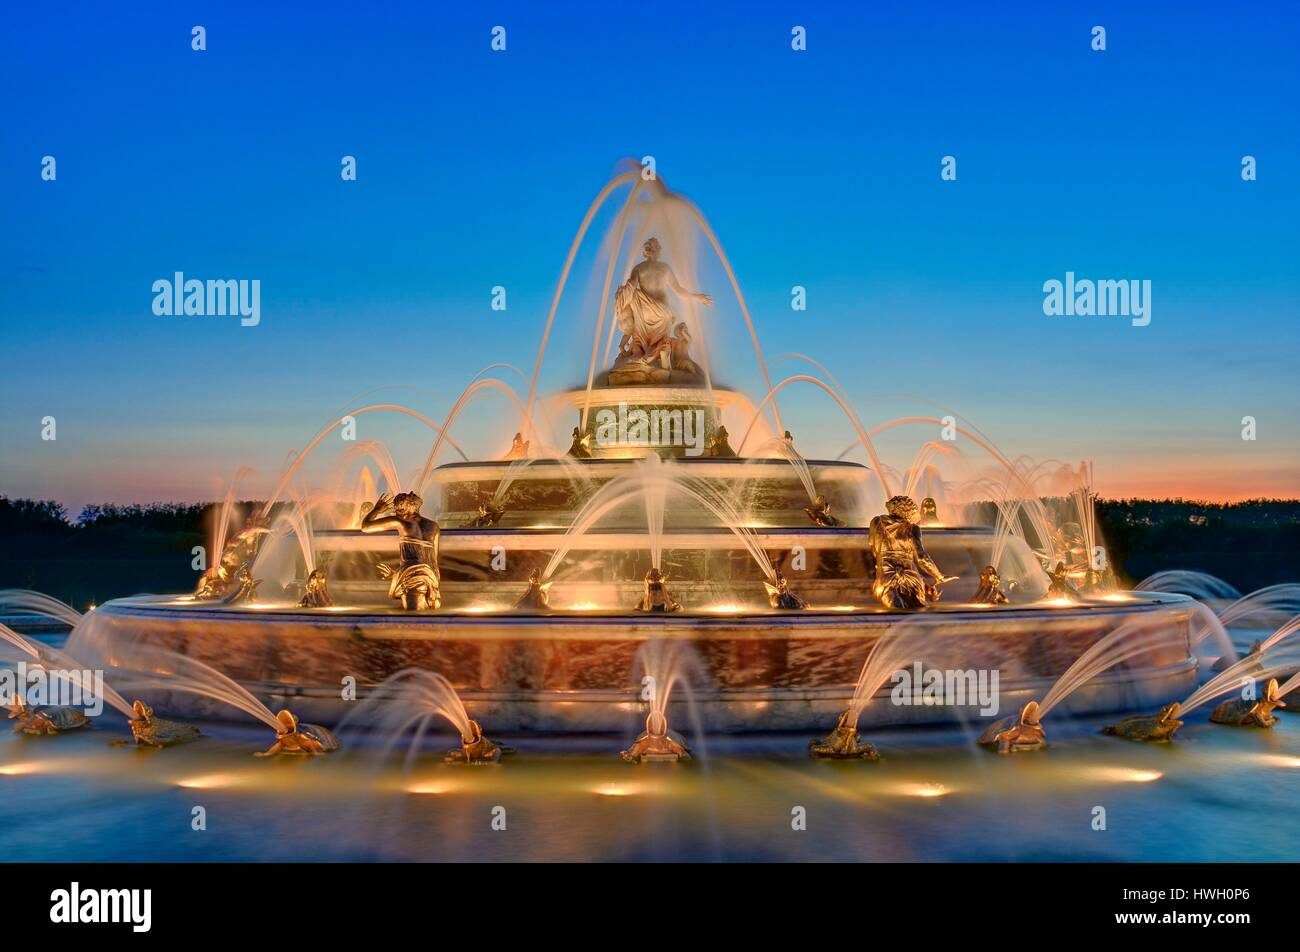 France, Yvelines, Versailles, gardens of the palace of Versailles listed as World Heritage by UNESCO, Latona fountain - Stock Image